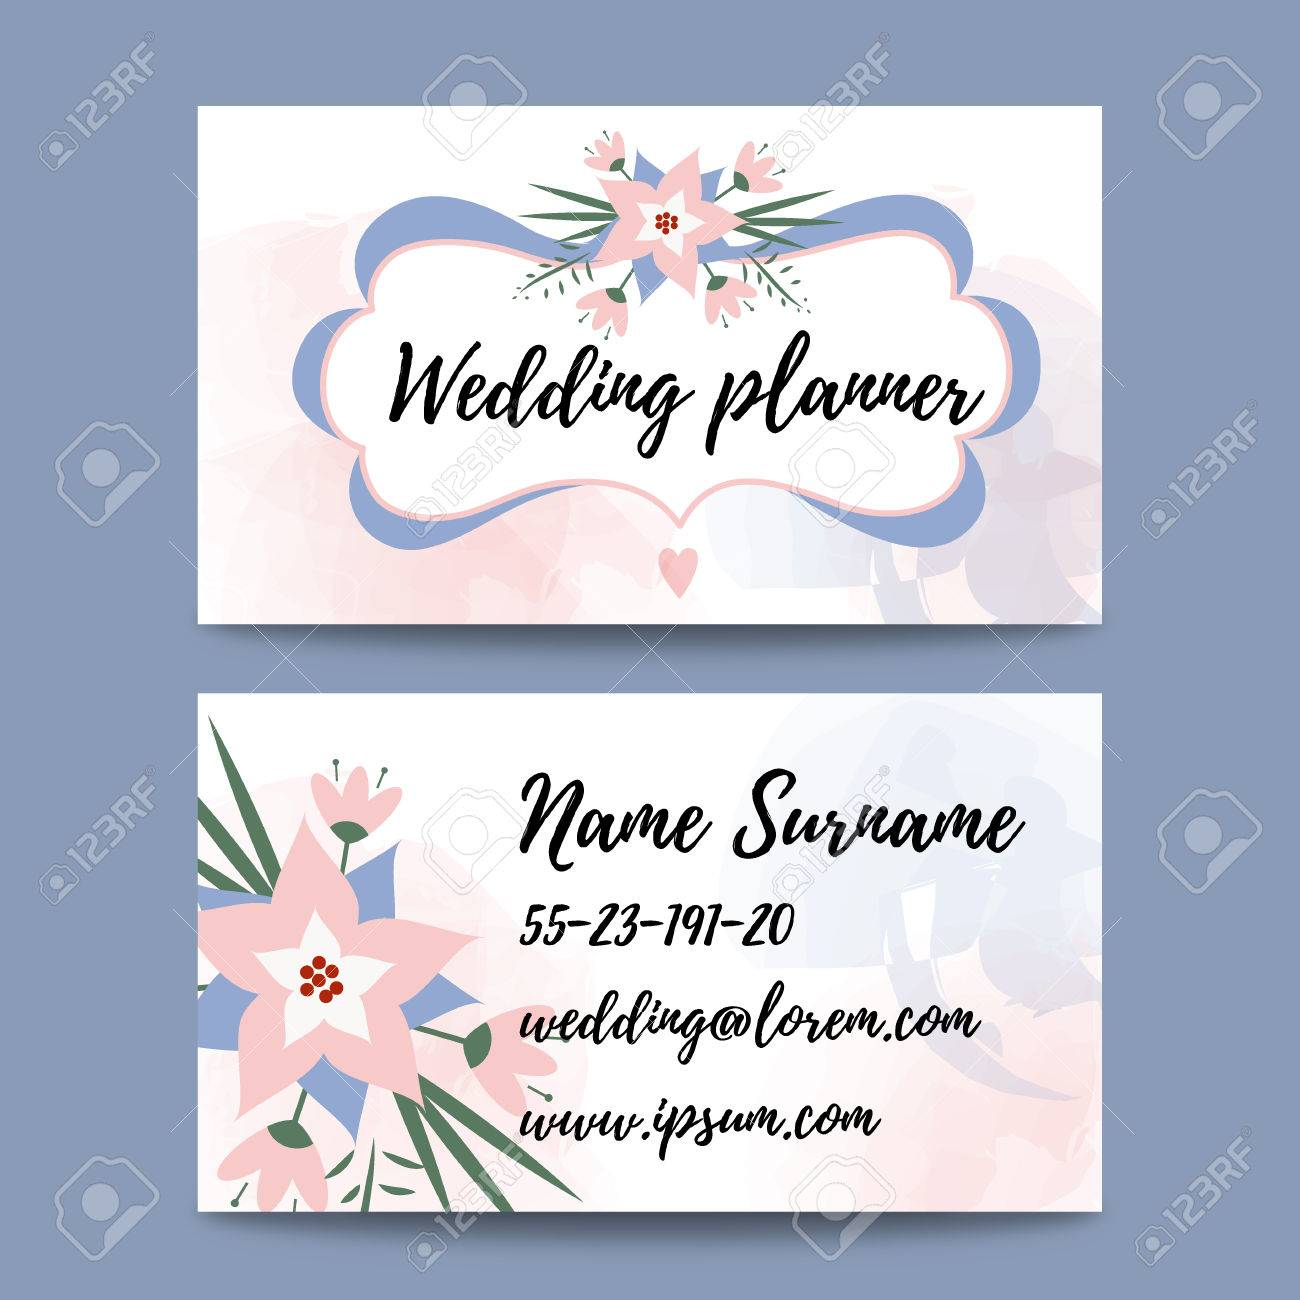 Vector pastel feminine business card template mockup with logo vector vector pastel feminine business card template mockup with logo flower suitable for wedding planners or florist owners wedding stationery business reheart Choice Image